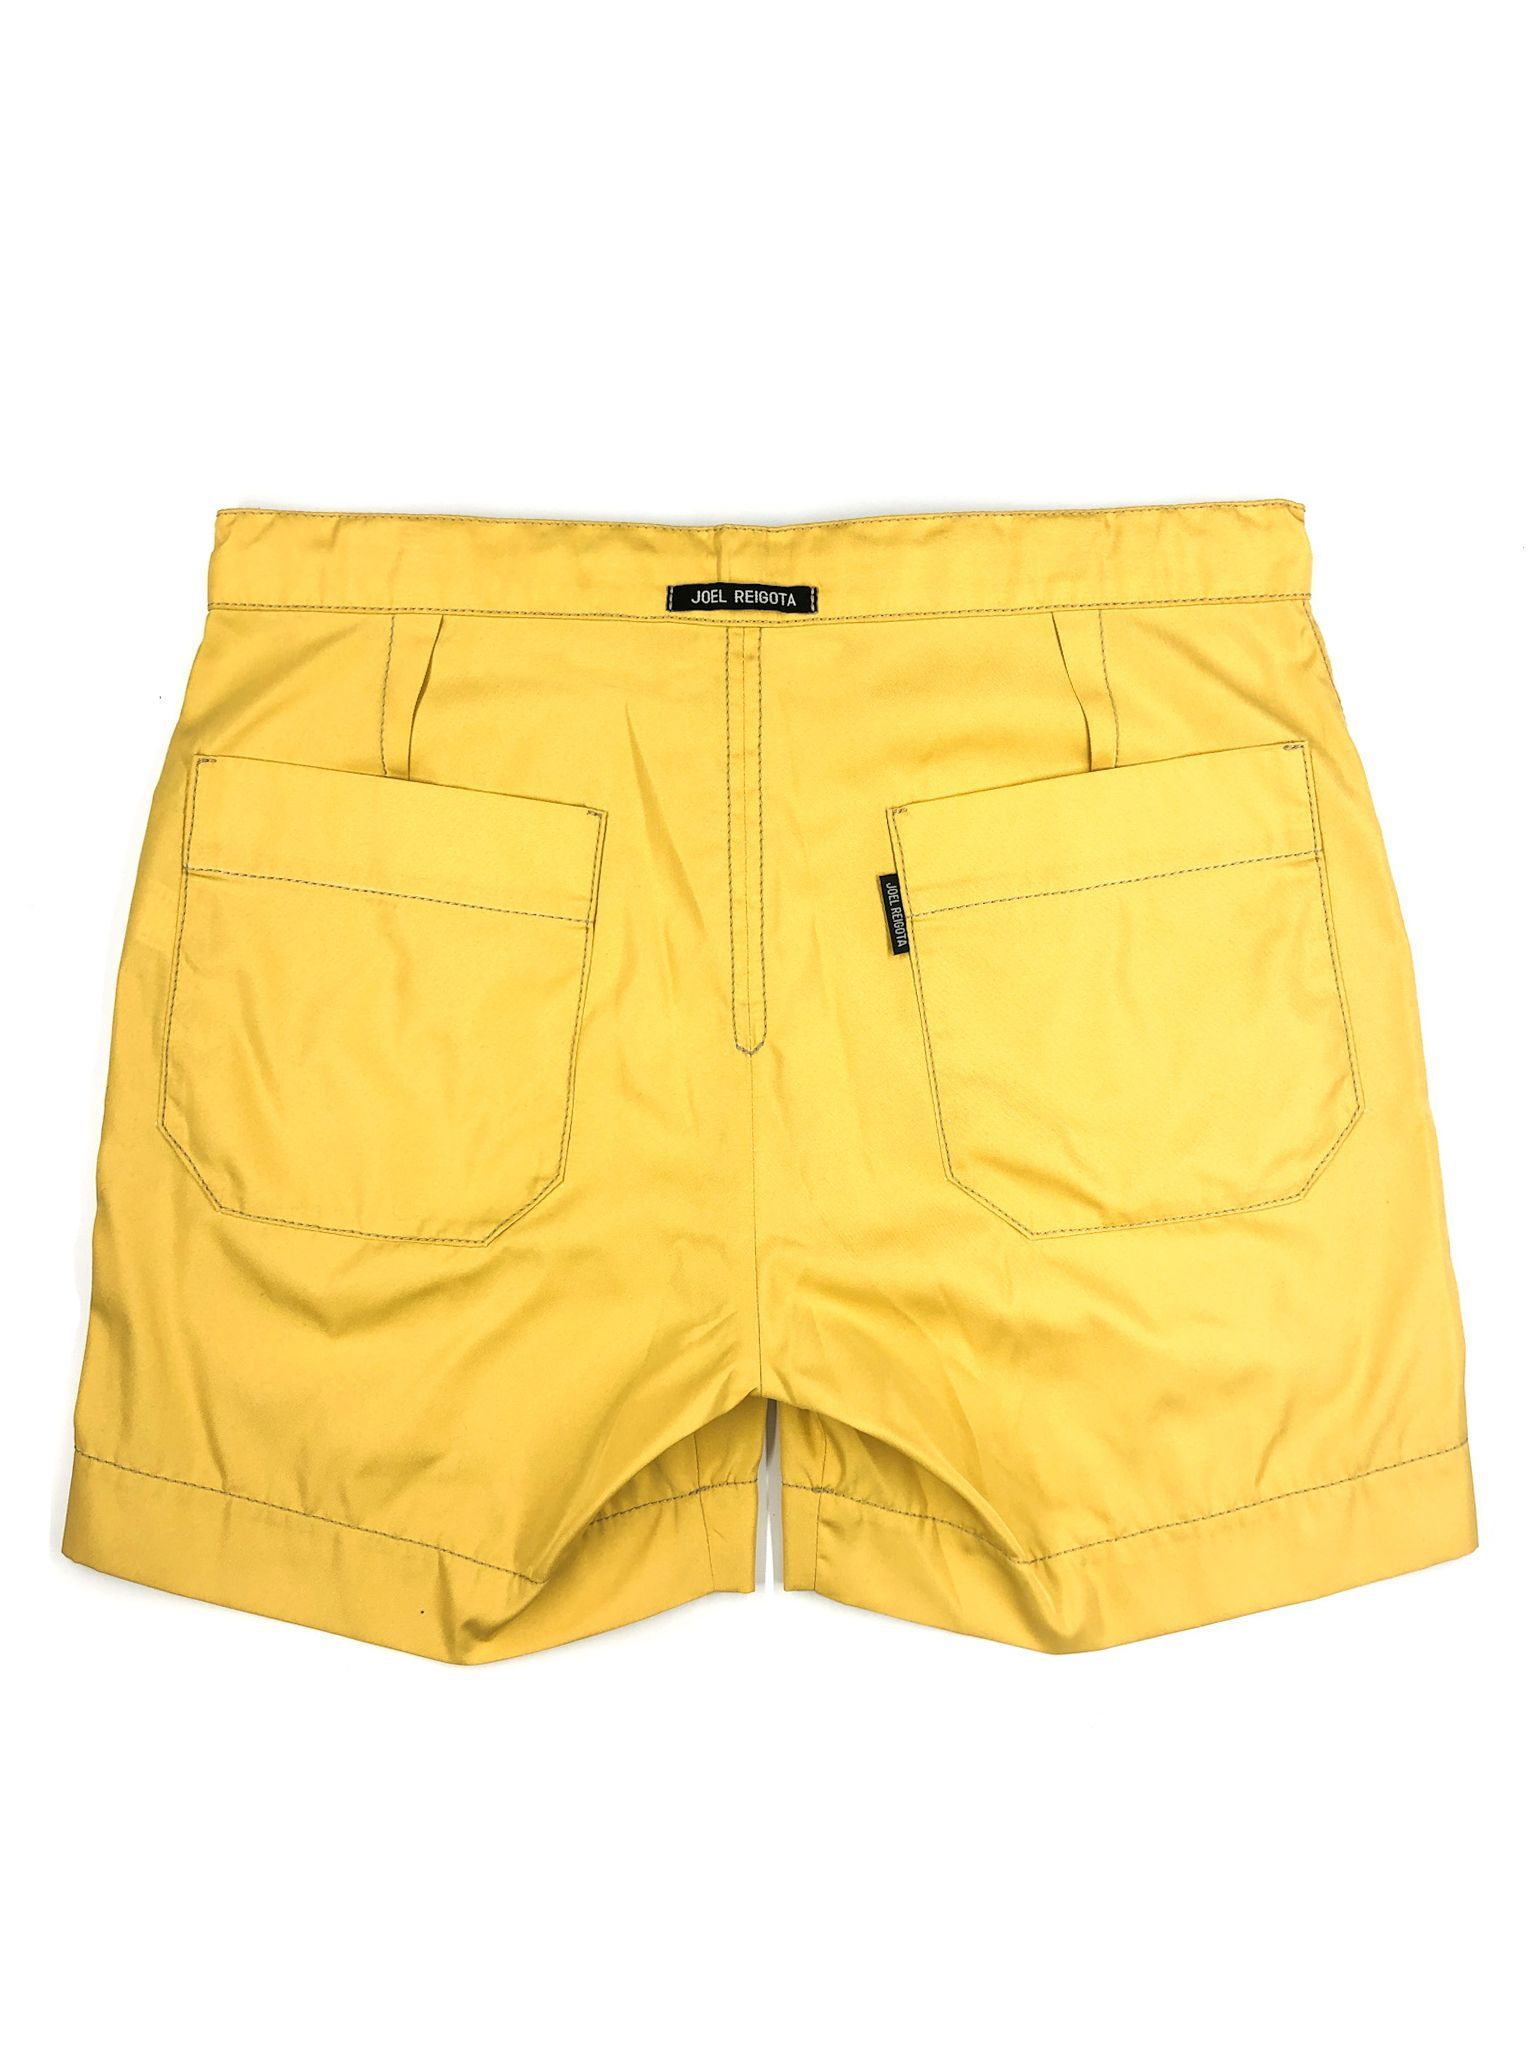 Yellow Drawstring Shorts